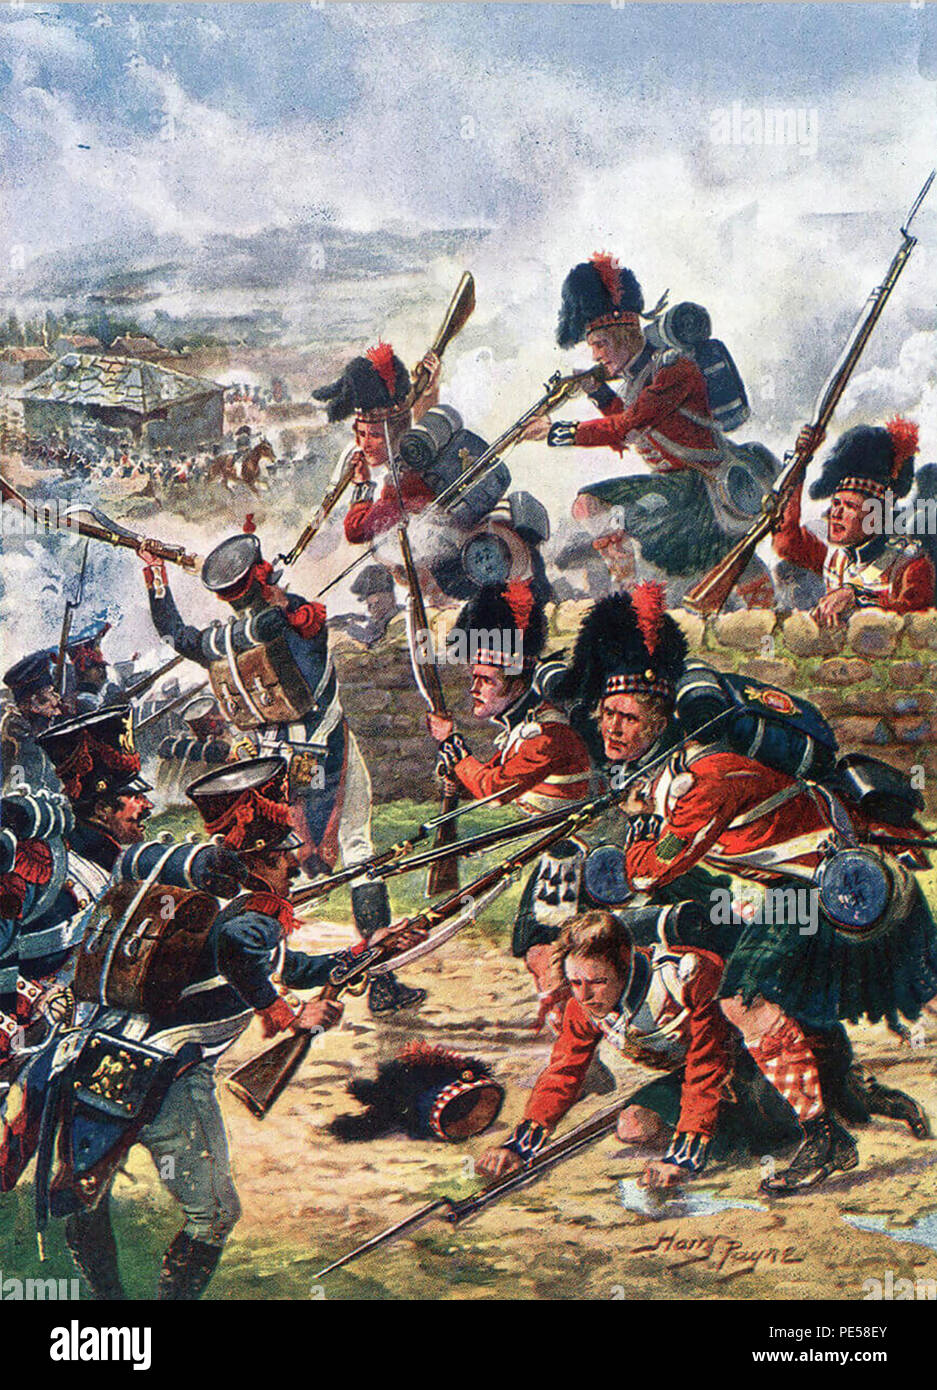 BATTLE OF CORUNNA 16 January 1809. The 42nd Highlanders the Black Watch fighting a rearguard action. By English war artist Harry Payne about 1912 - Stock Image